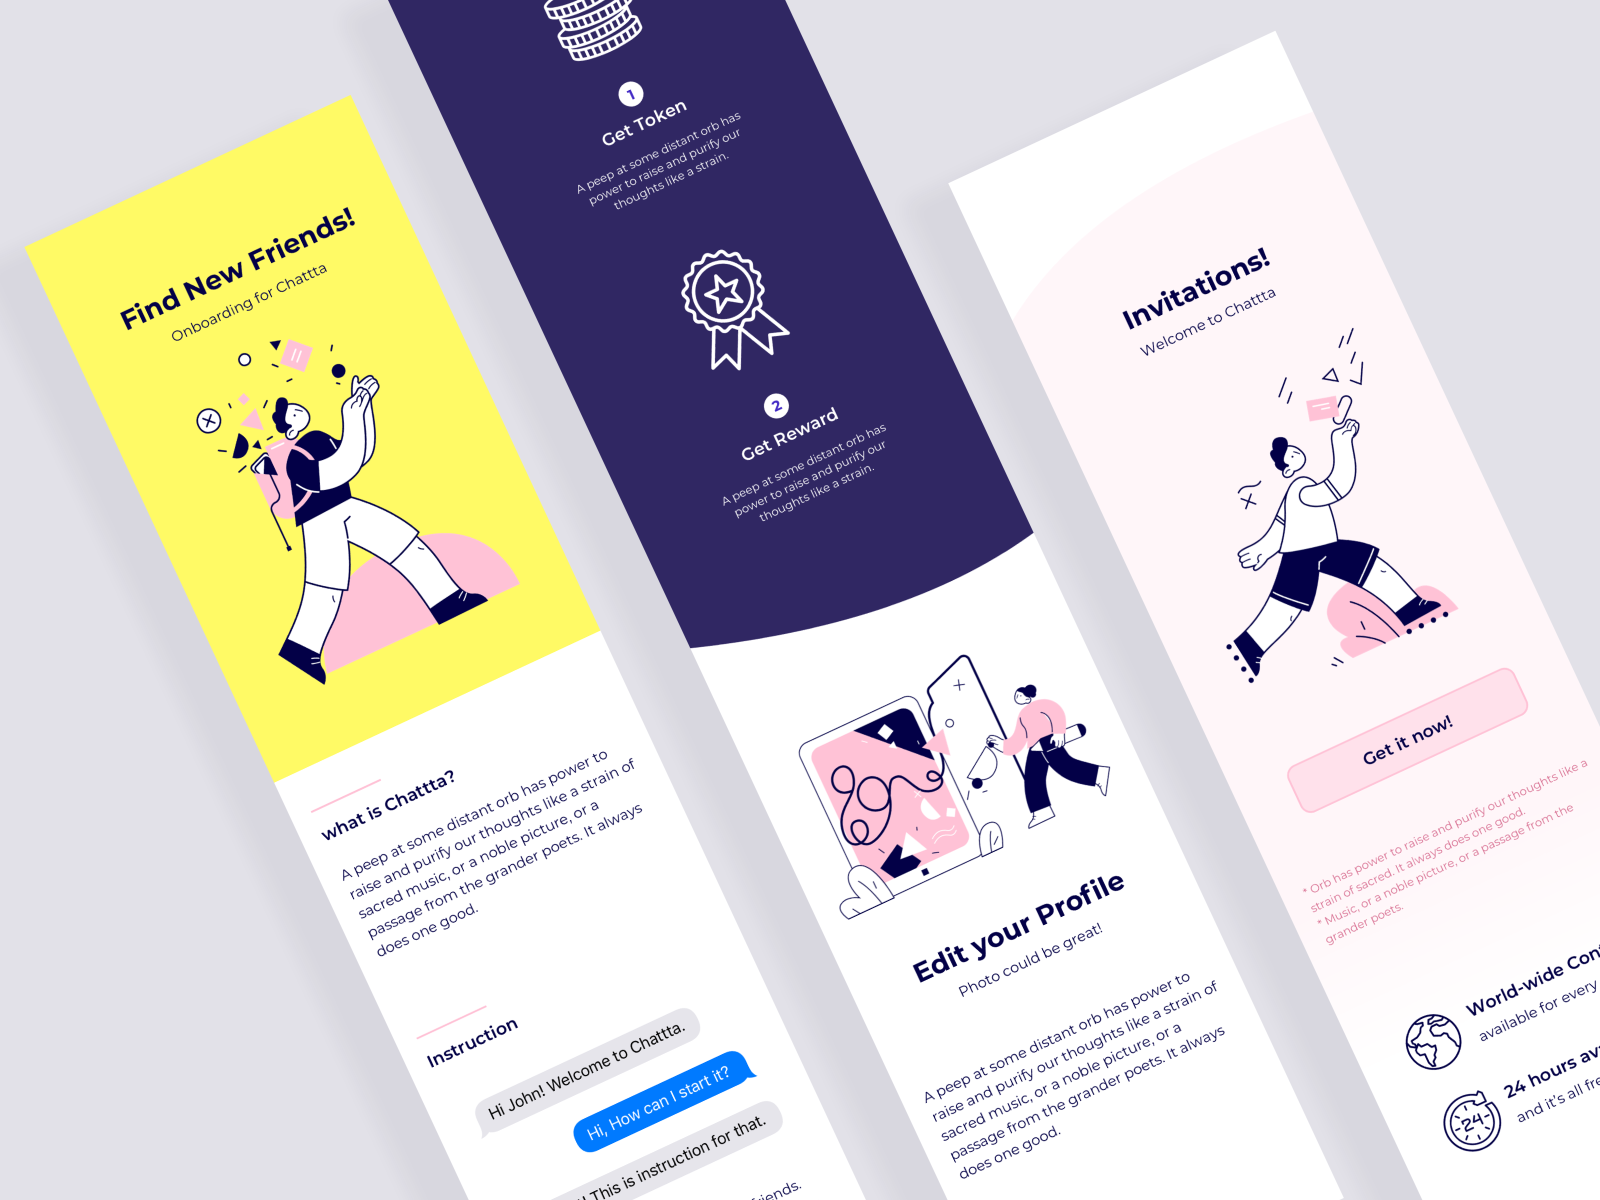 Chat App Onboarding Concept By Sarah Park On Dribbble